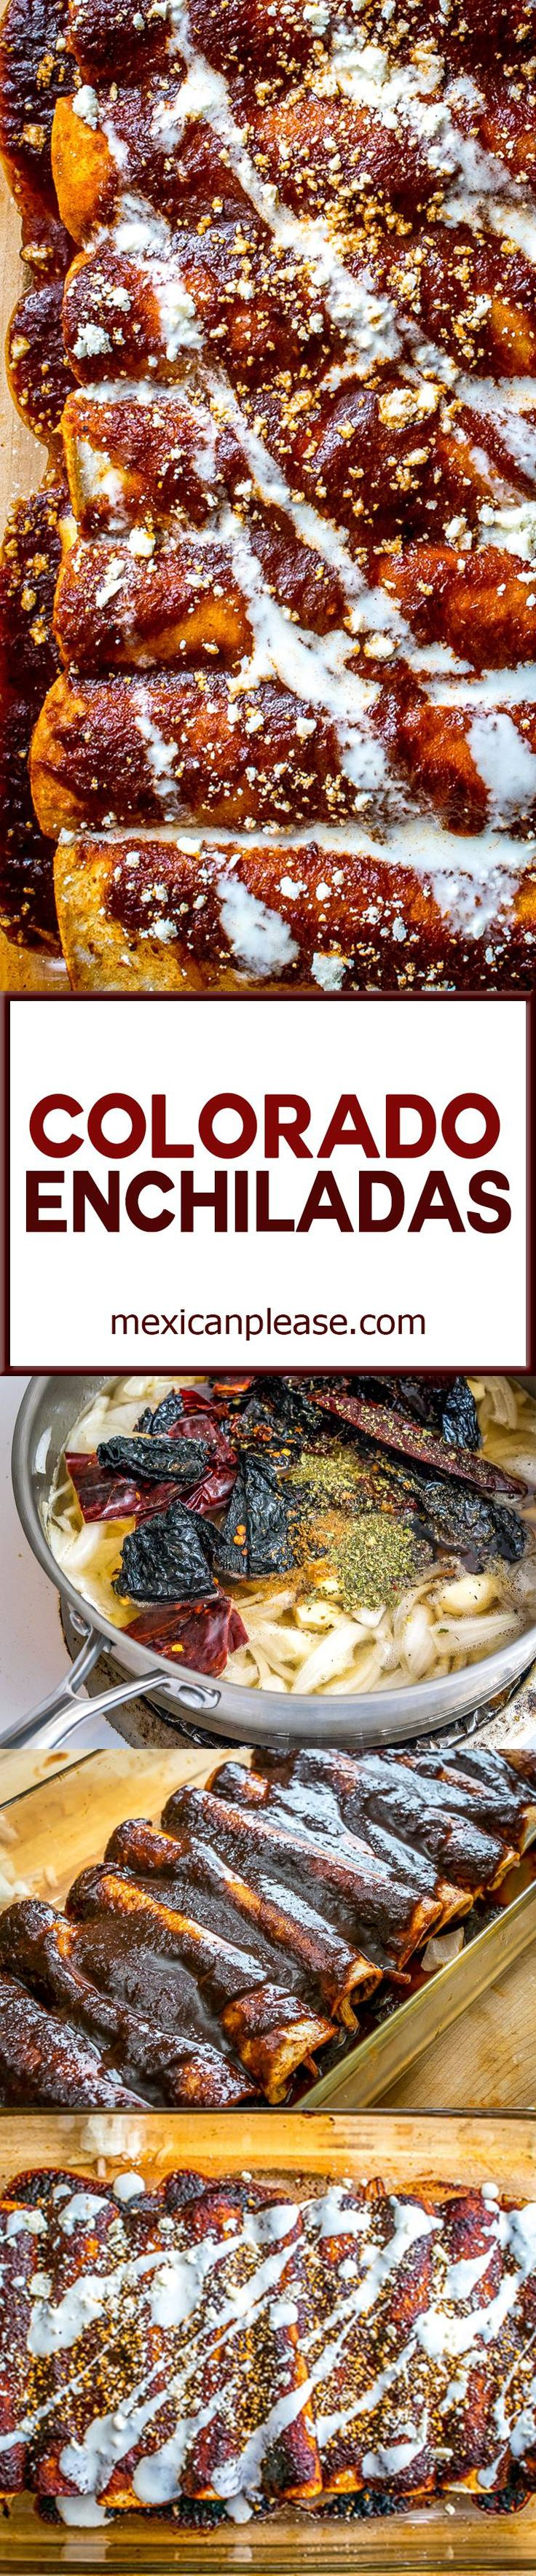 Ancho and New Mexican dried chiles combine with adobo sauce and a sliver of chocolate to create an unbelievably satisfying Colorado sauce.  Serve it up in classic enchilada style and you've got a dish you can't get anywhere else in your town, or state, or country.  Enjoy!  mexicanplease.com